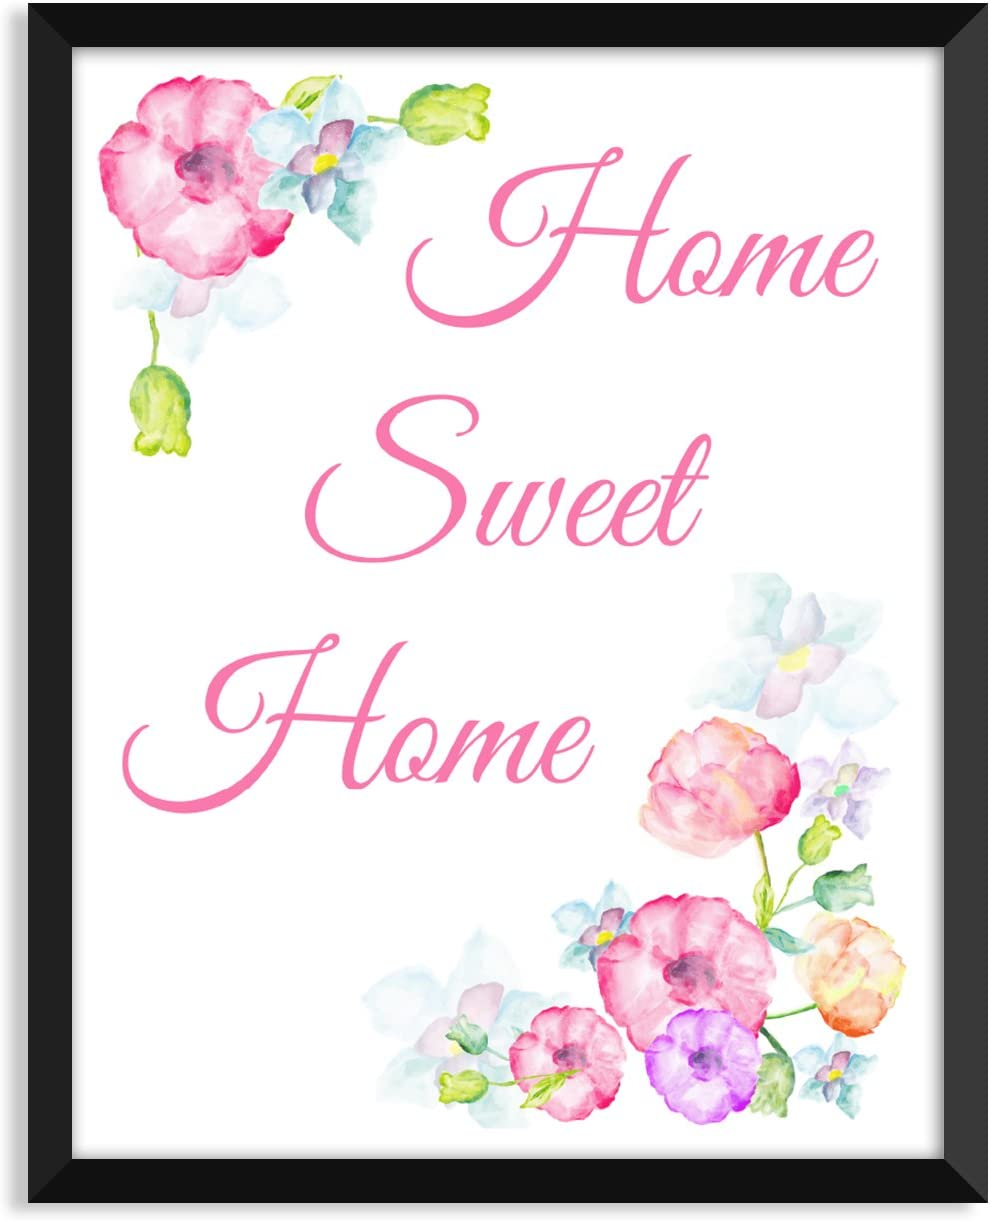 Home Sweet Home - Floral, Inspirational Quote, Minimalist Poster, Home Decor, College Dorm Room Decorations, Wall Art